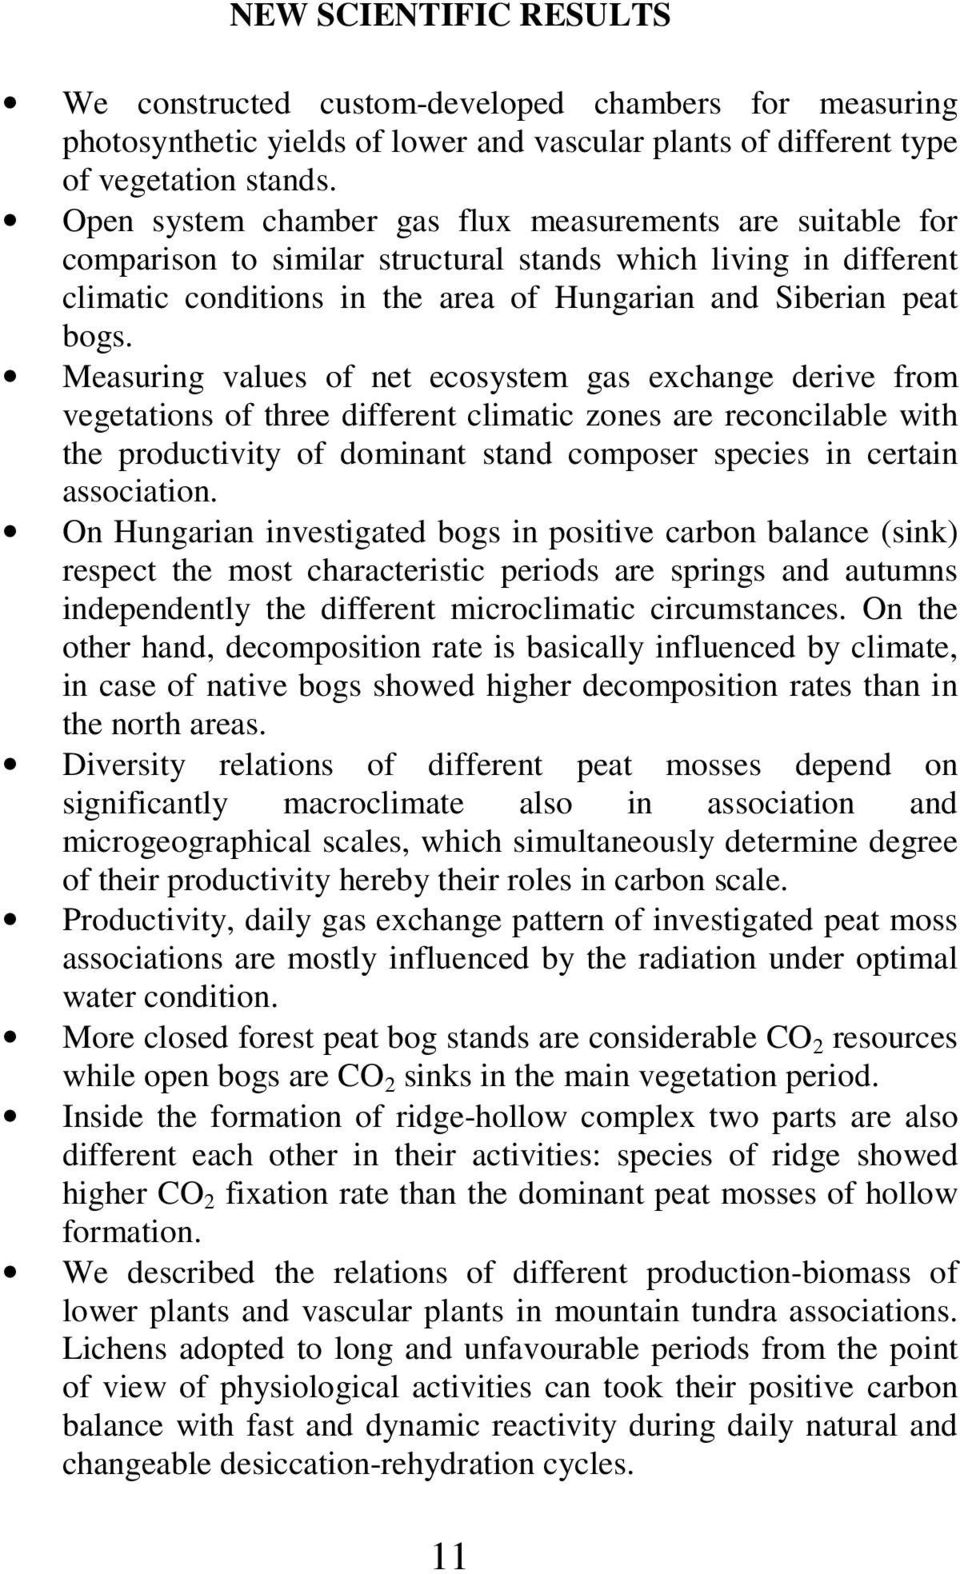 Measuring values of net ecosystem gas exchange derive from vegetations of three different climatic zones are reconcilable with the productivity of dominant stand composer species in certain